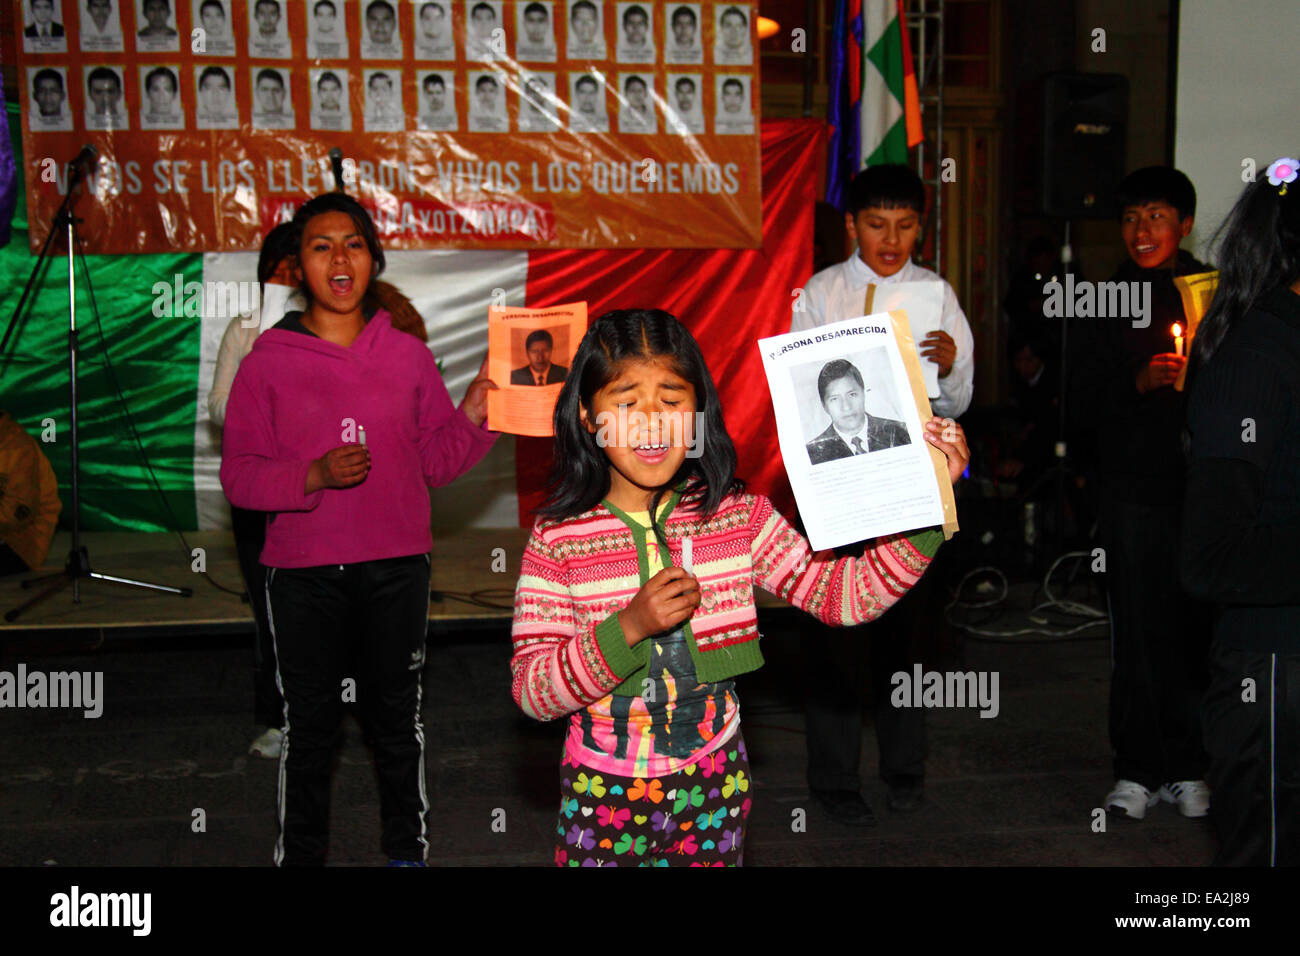 LA PAZ, BOLIVIA, 5th November 2014. Children from a theatre group perform at an event organised to show solidarity - Stock Image